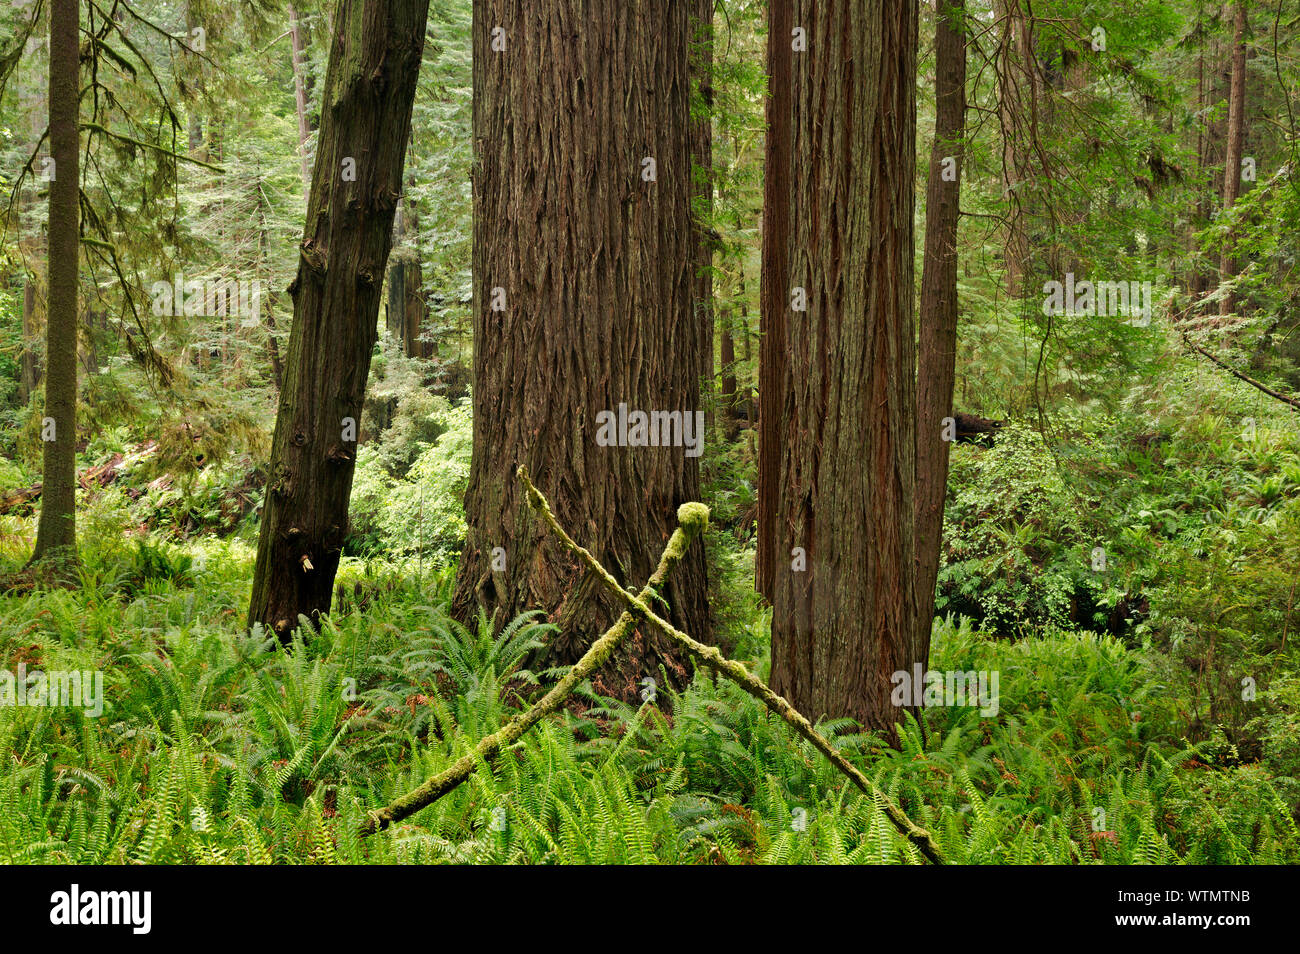 CA03544-00...CALIFORNIA - Redwood forest along the Prairie Creek Trail in Prairie Creek Redwoods State Park; part of the Redwoods National and State P Stock Photo